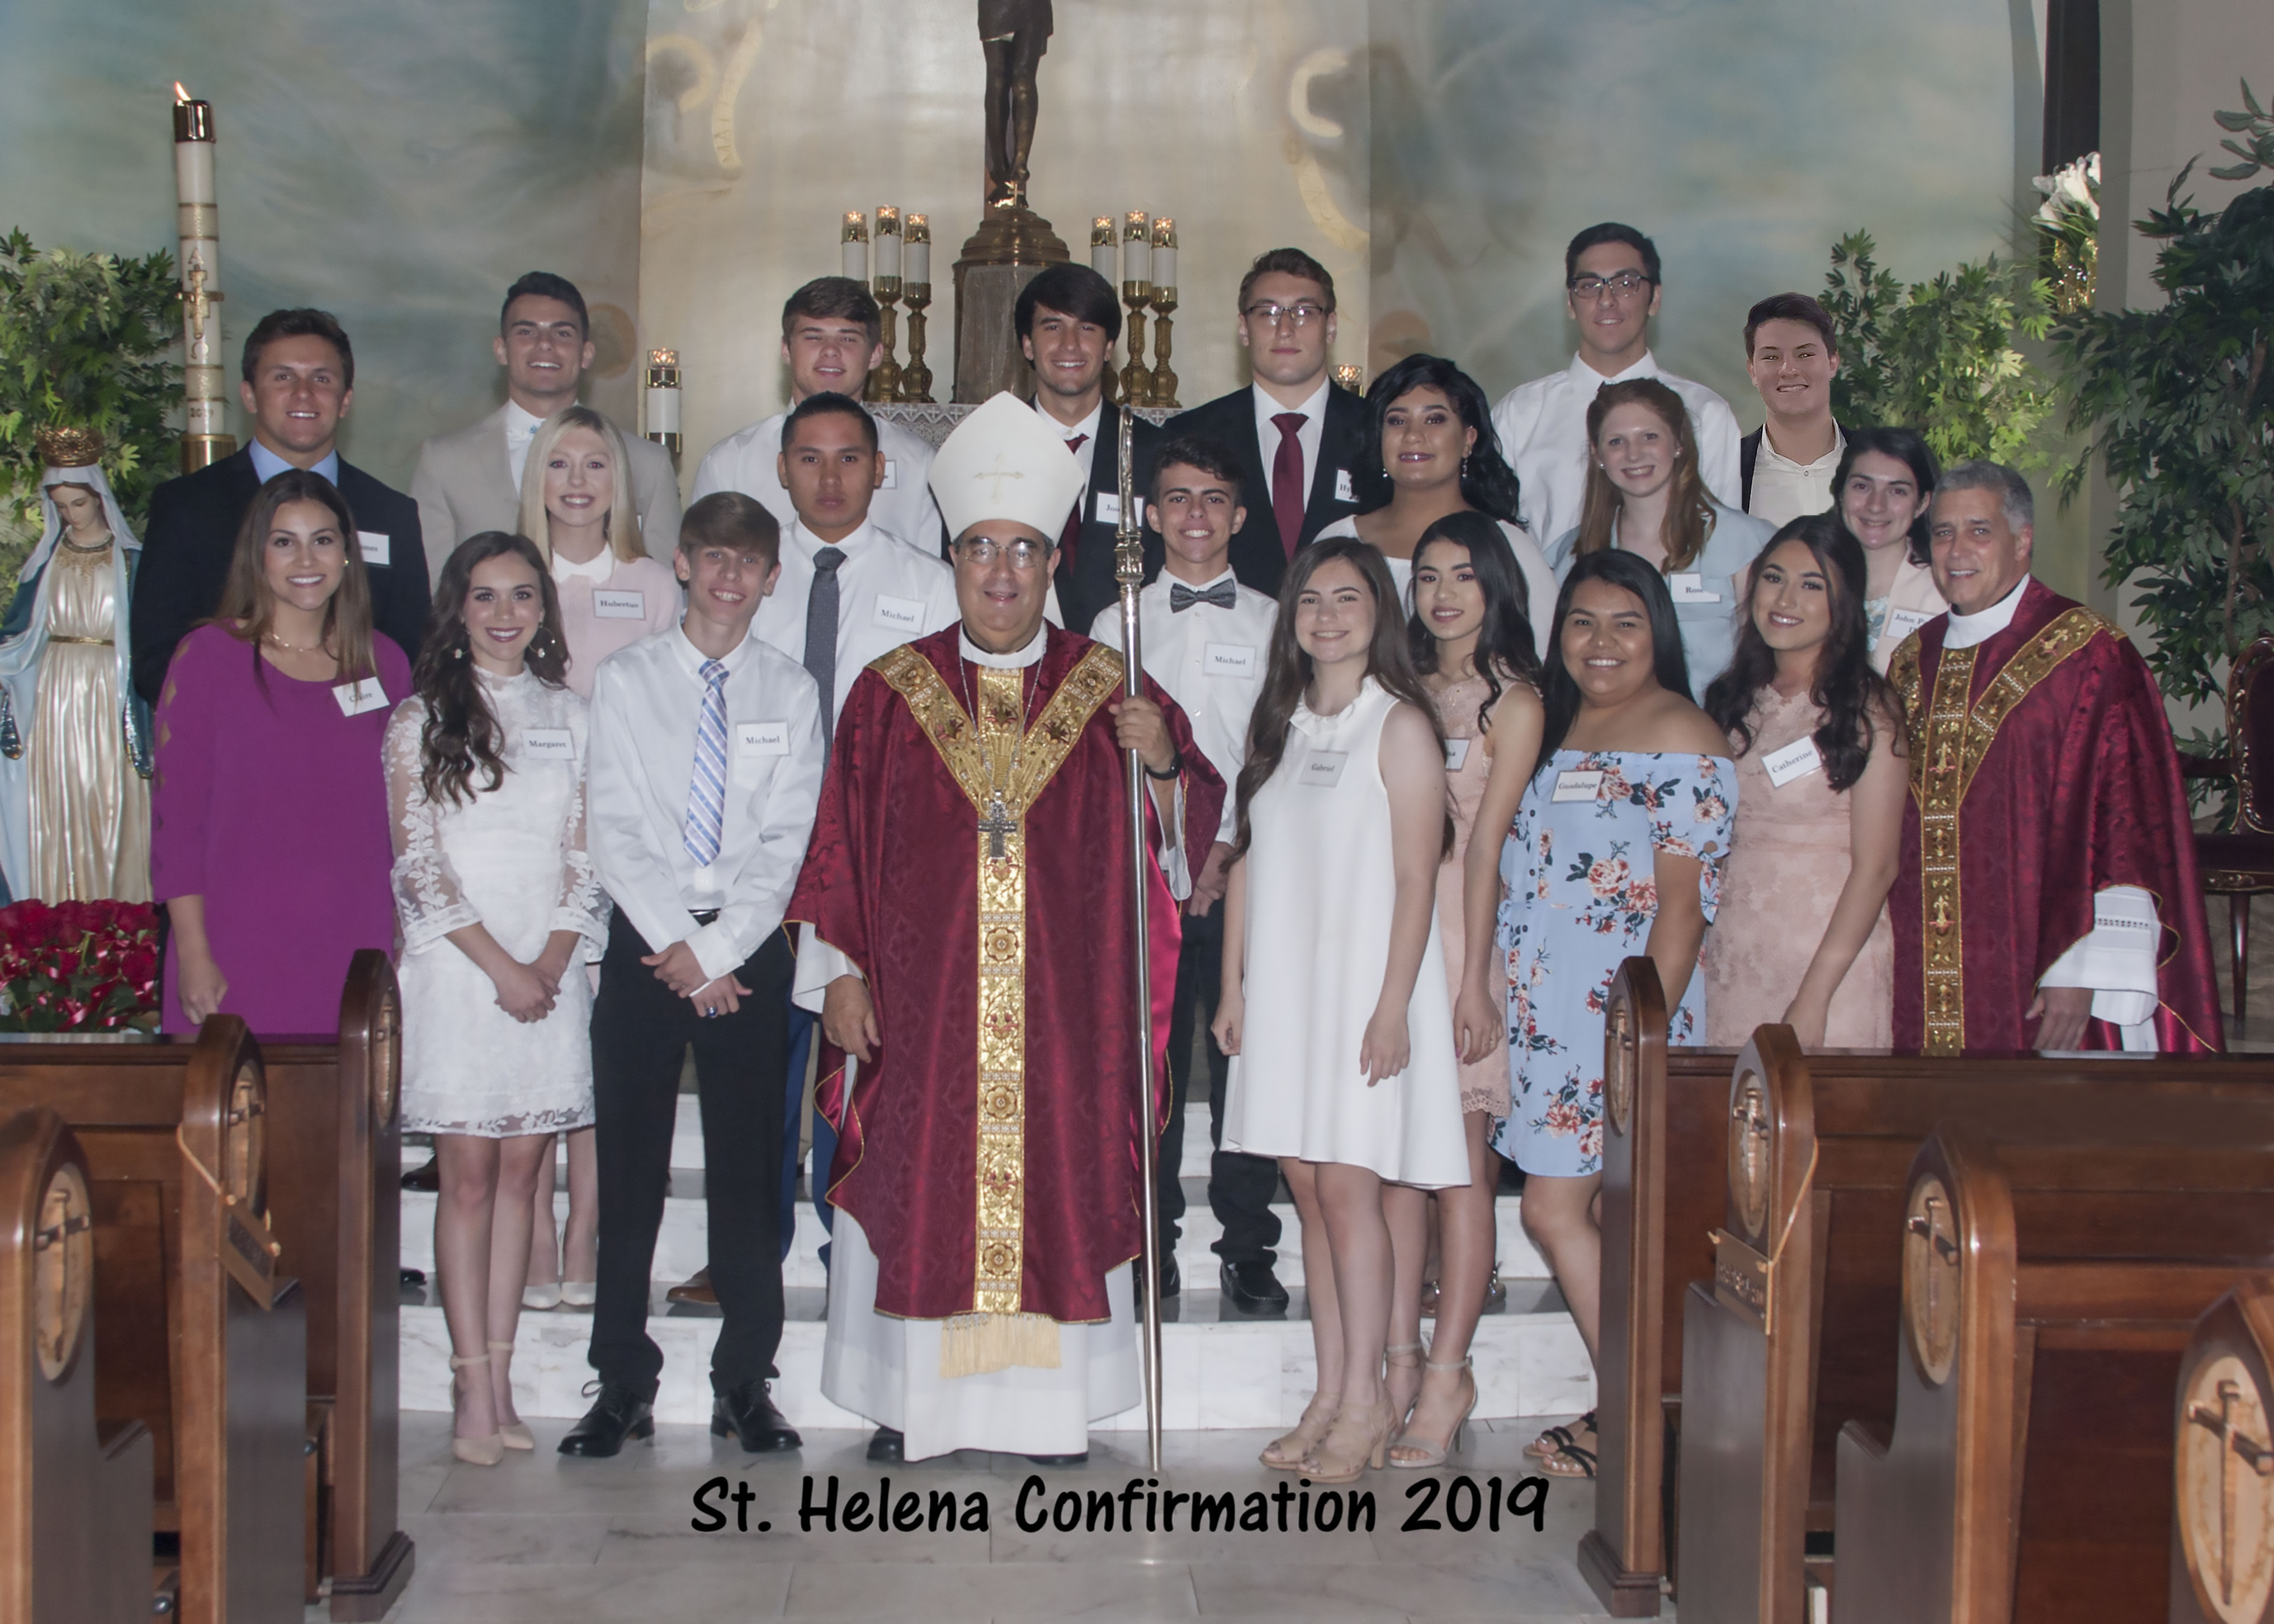 2019 confirmation picture